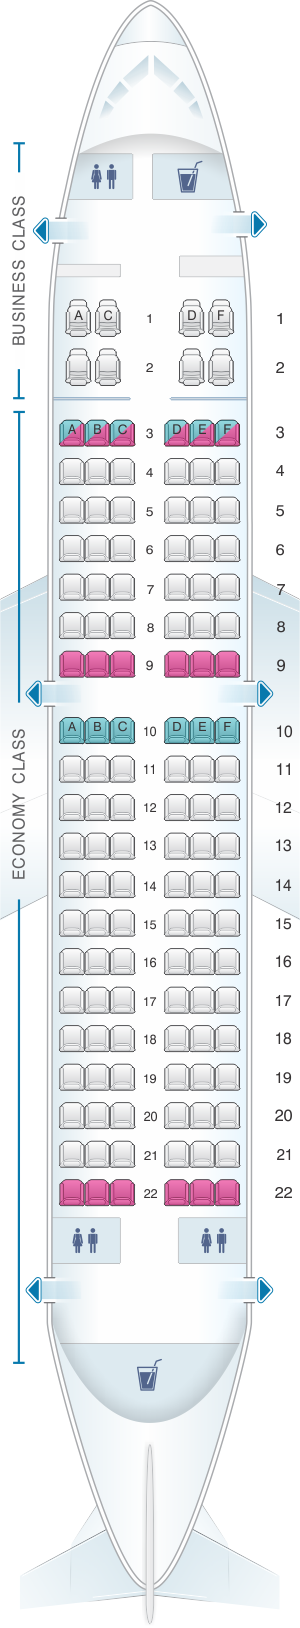 Seat map for Virgin Australia Boeing B737 700